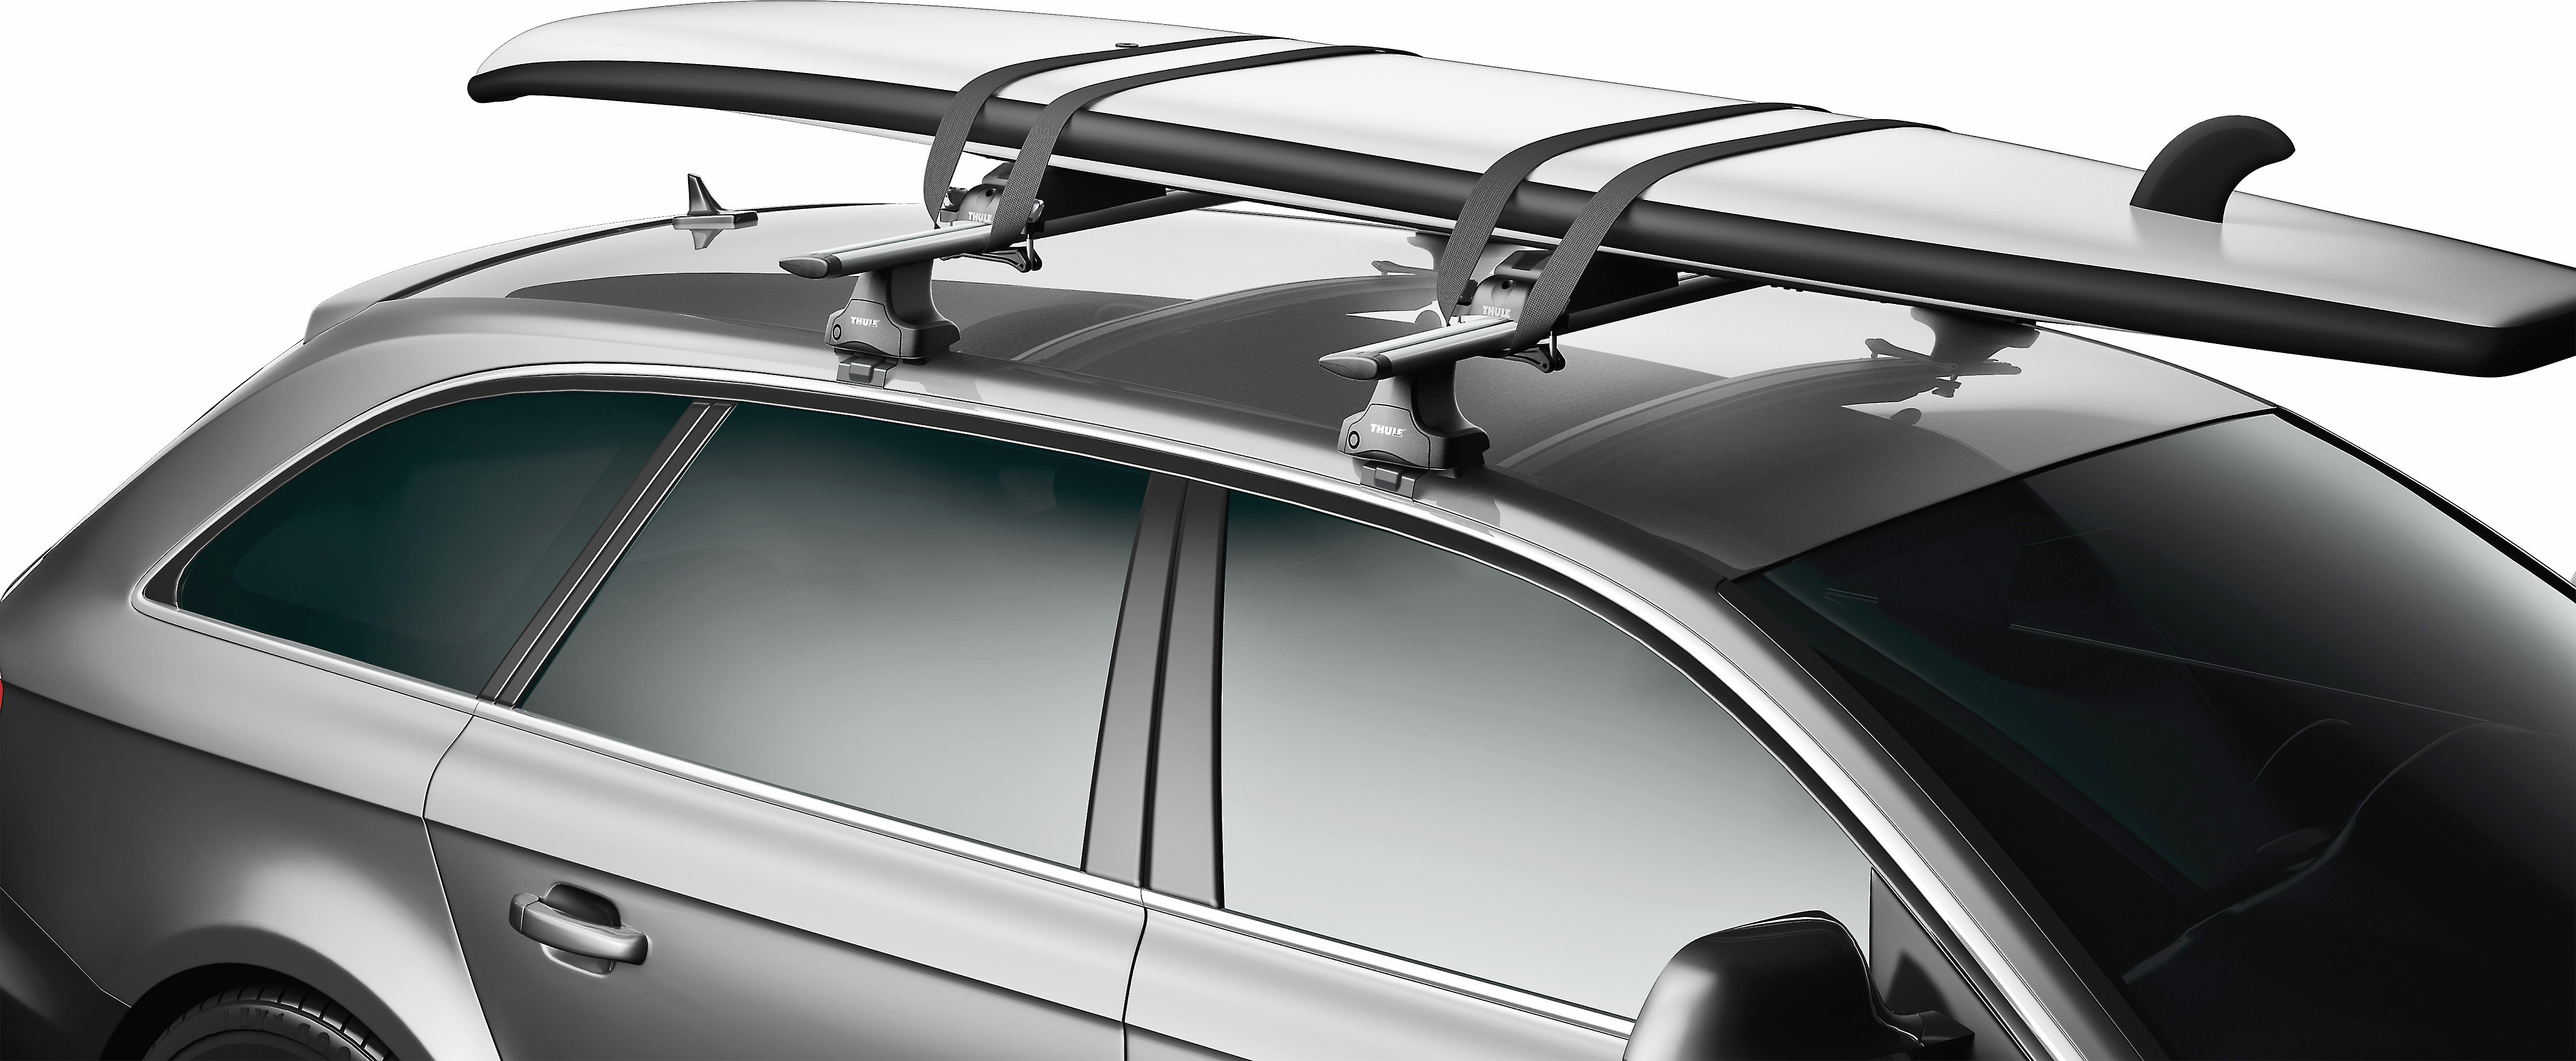 Paddle Board Car Racks >> Thule Sup Shuttle Paddleboard Carrier 811 Mounting System